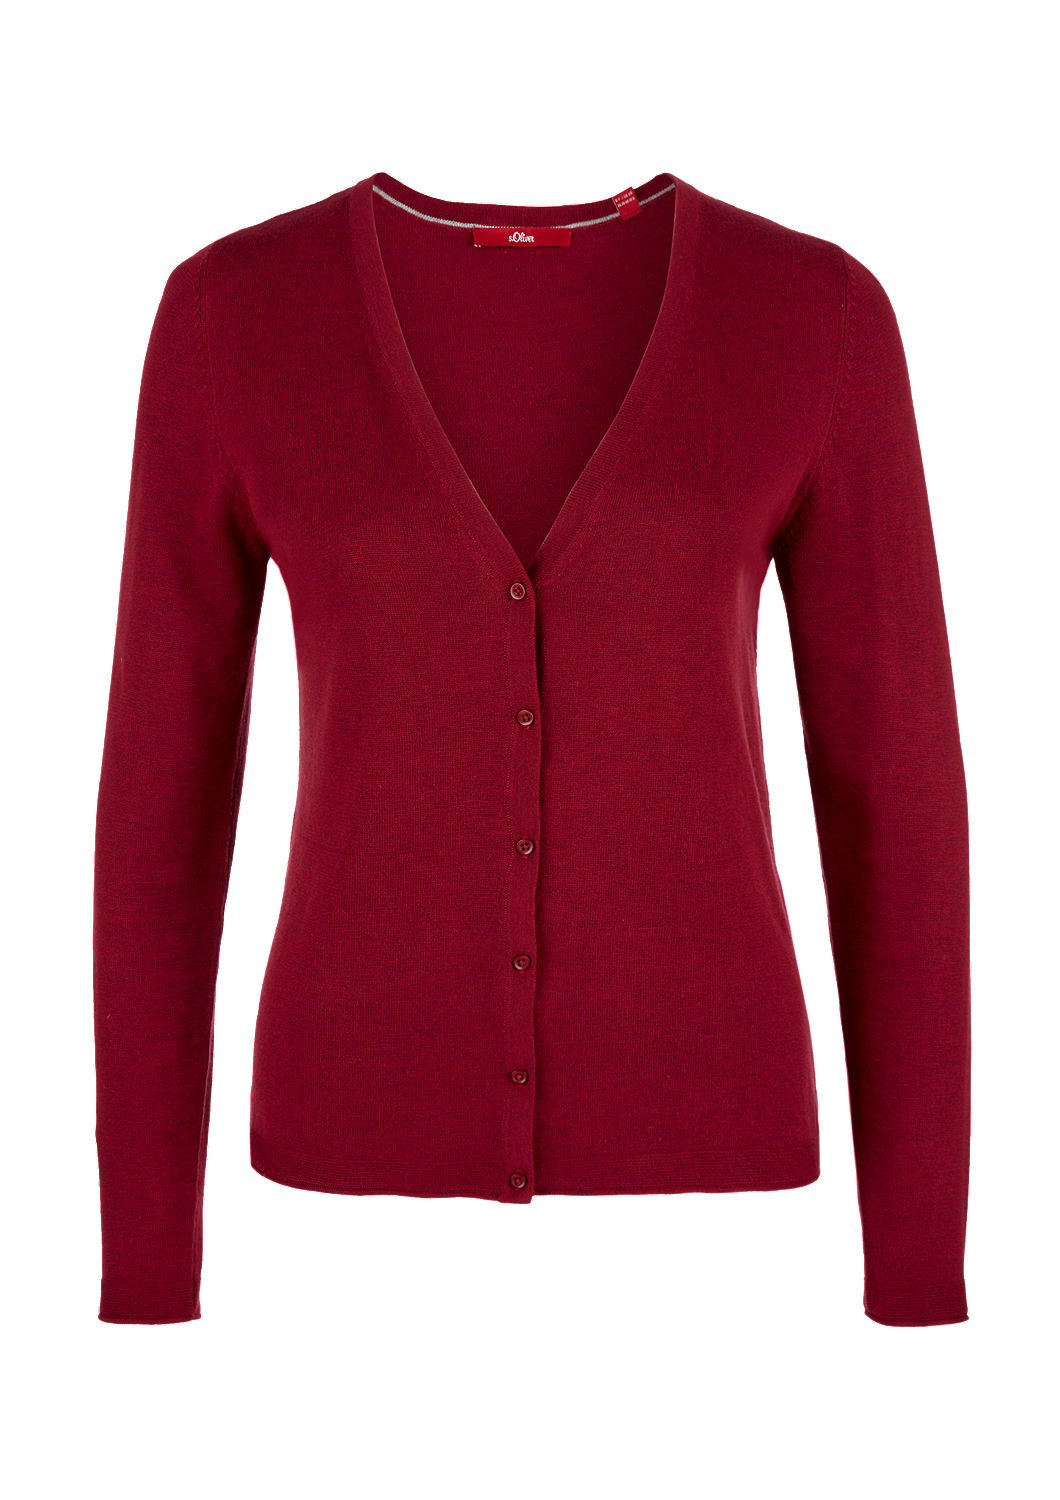 factory outlets how to buy running shoes Klassische Feinstrick-Cardigan kaufen   s.Oliver Shop